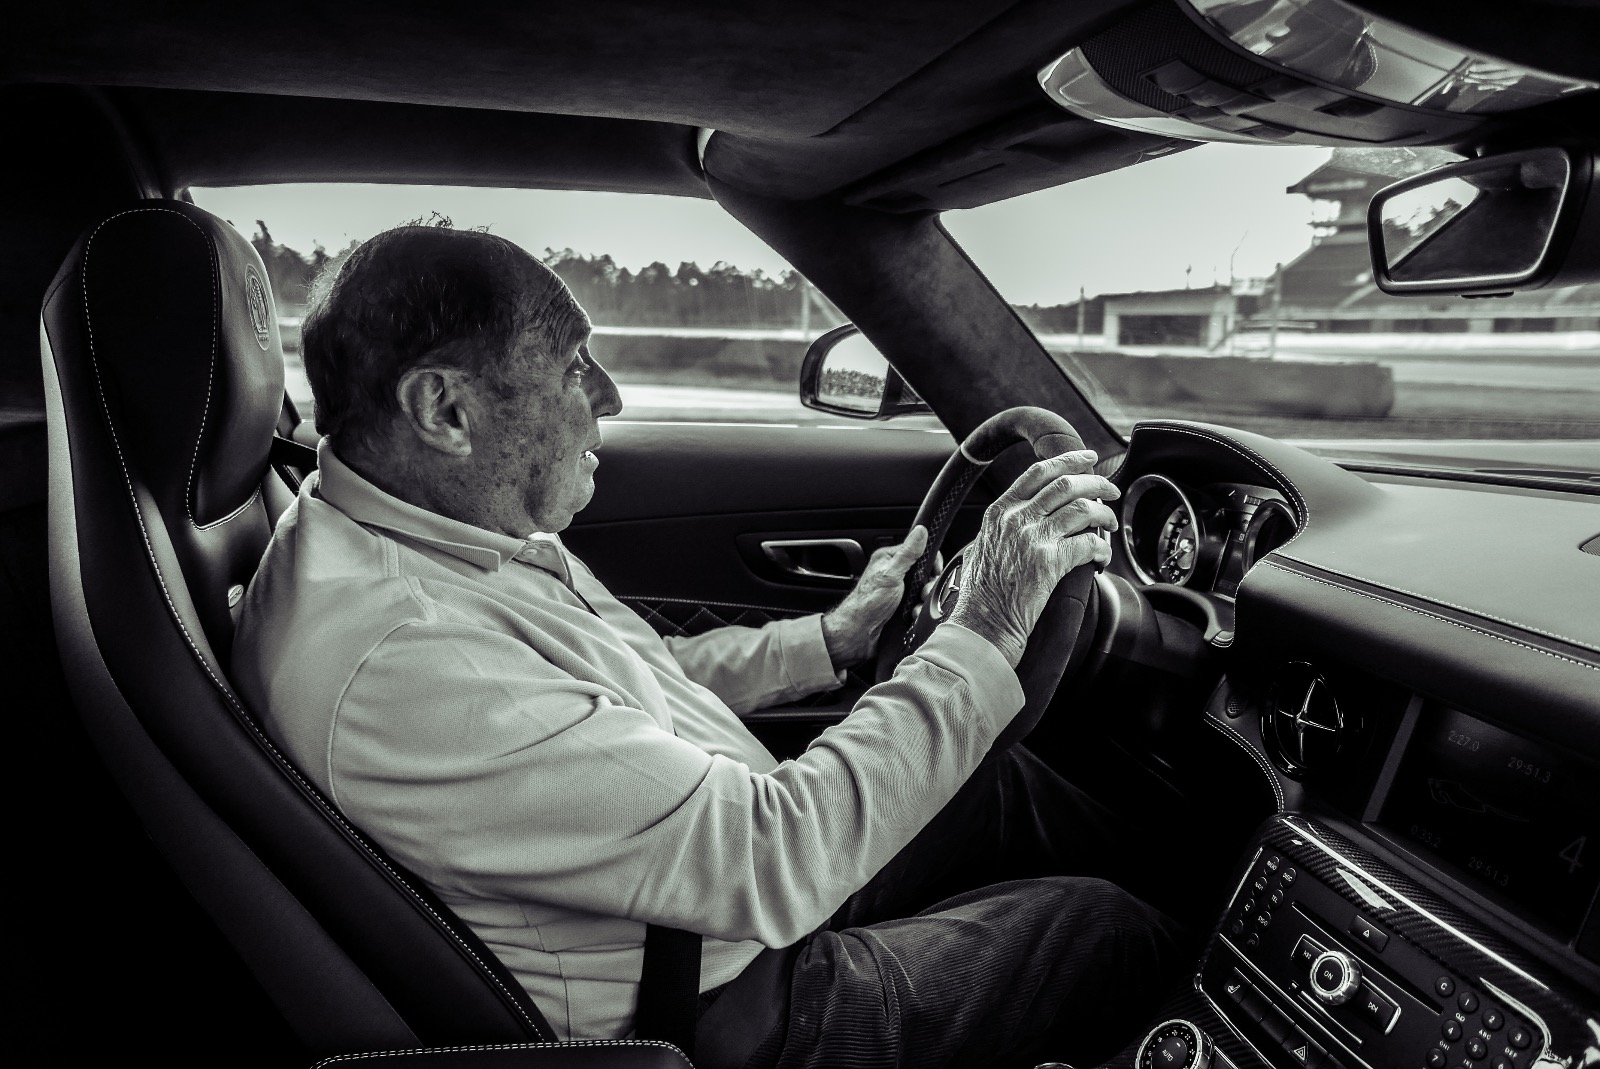 Track day @ Hockenheim - 1 december 2018Jochen Mass driving our AMG SLS final edition.Hot-laps with formal F1 driver Mass is a once of a life time opportunity!